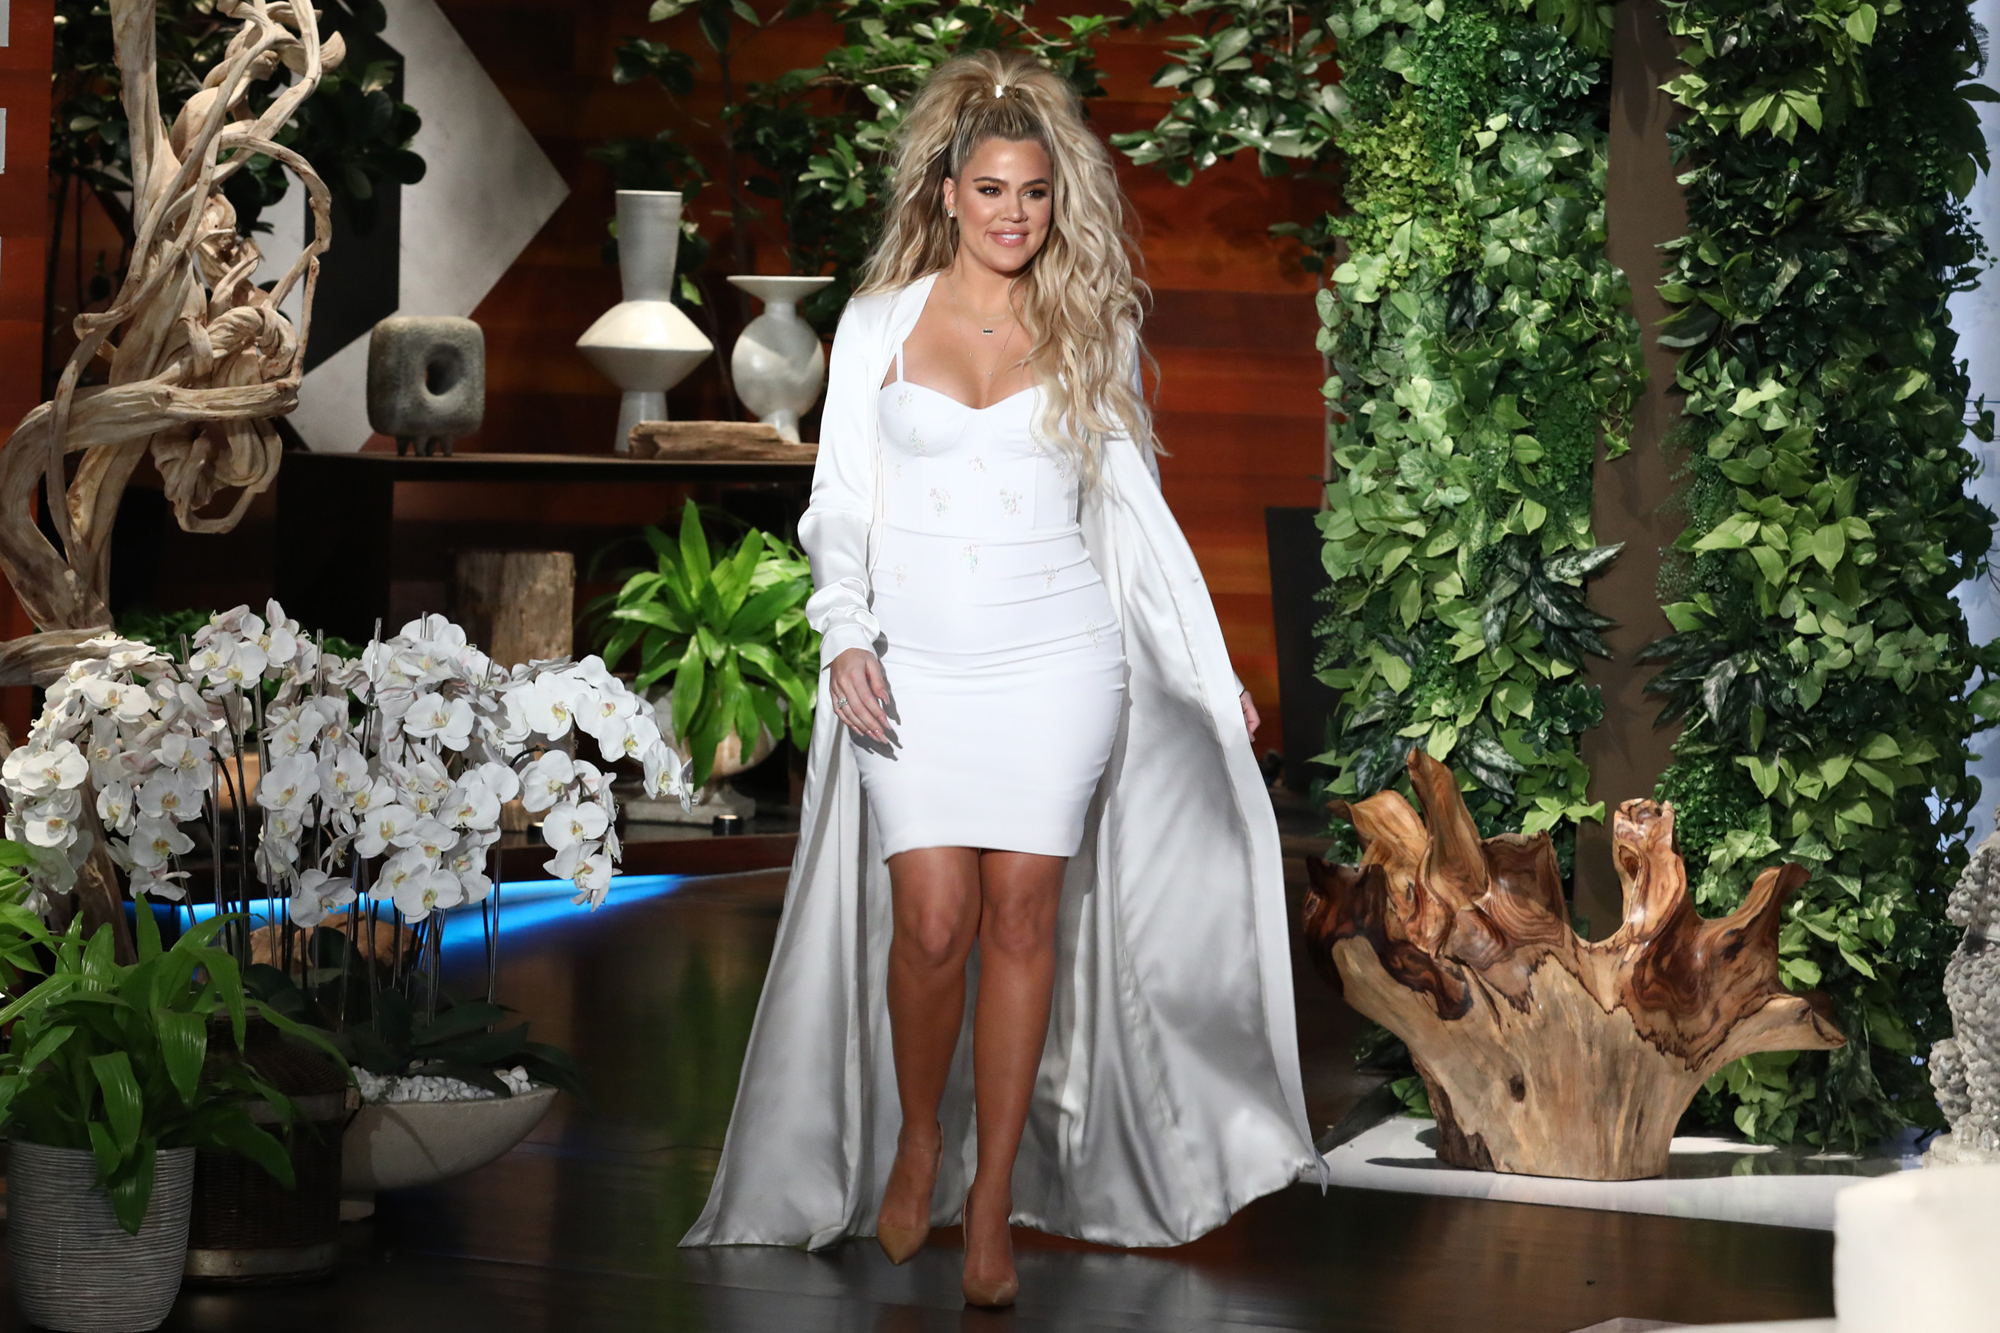 (VIDEO) WATCH!! Khloe Kardashian Makes First Appearance Since Announcing Her Pregnancy on Ellen Degeneres Show